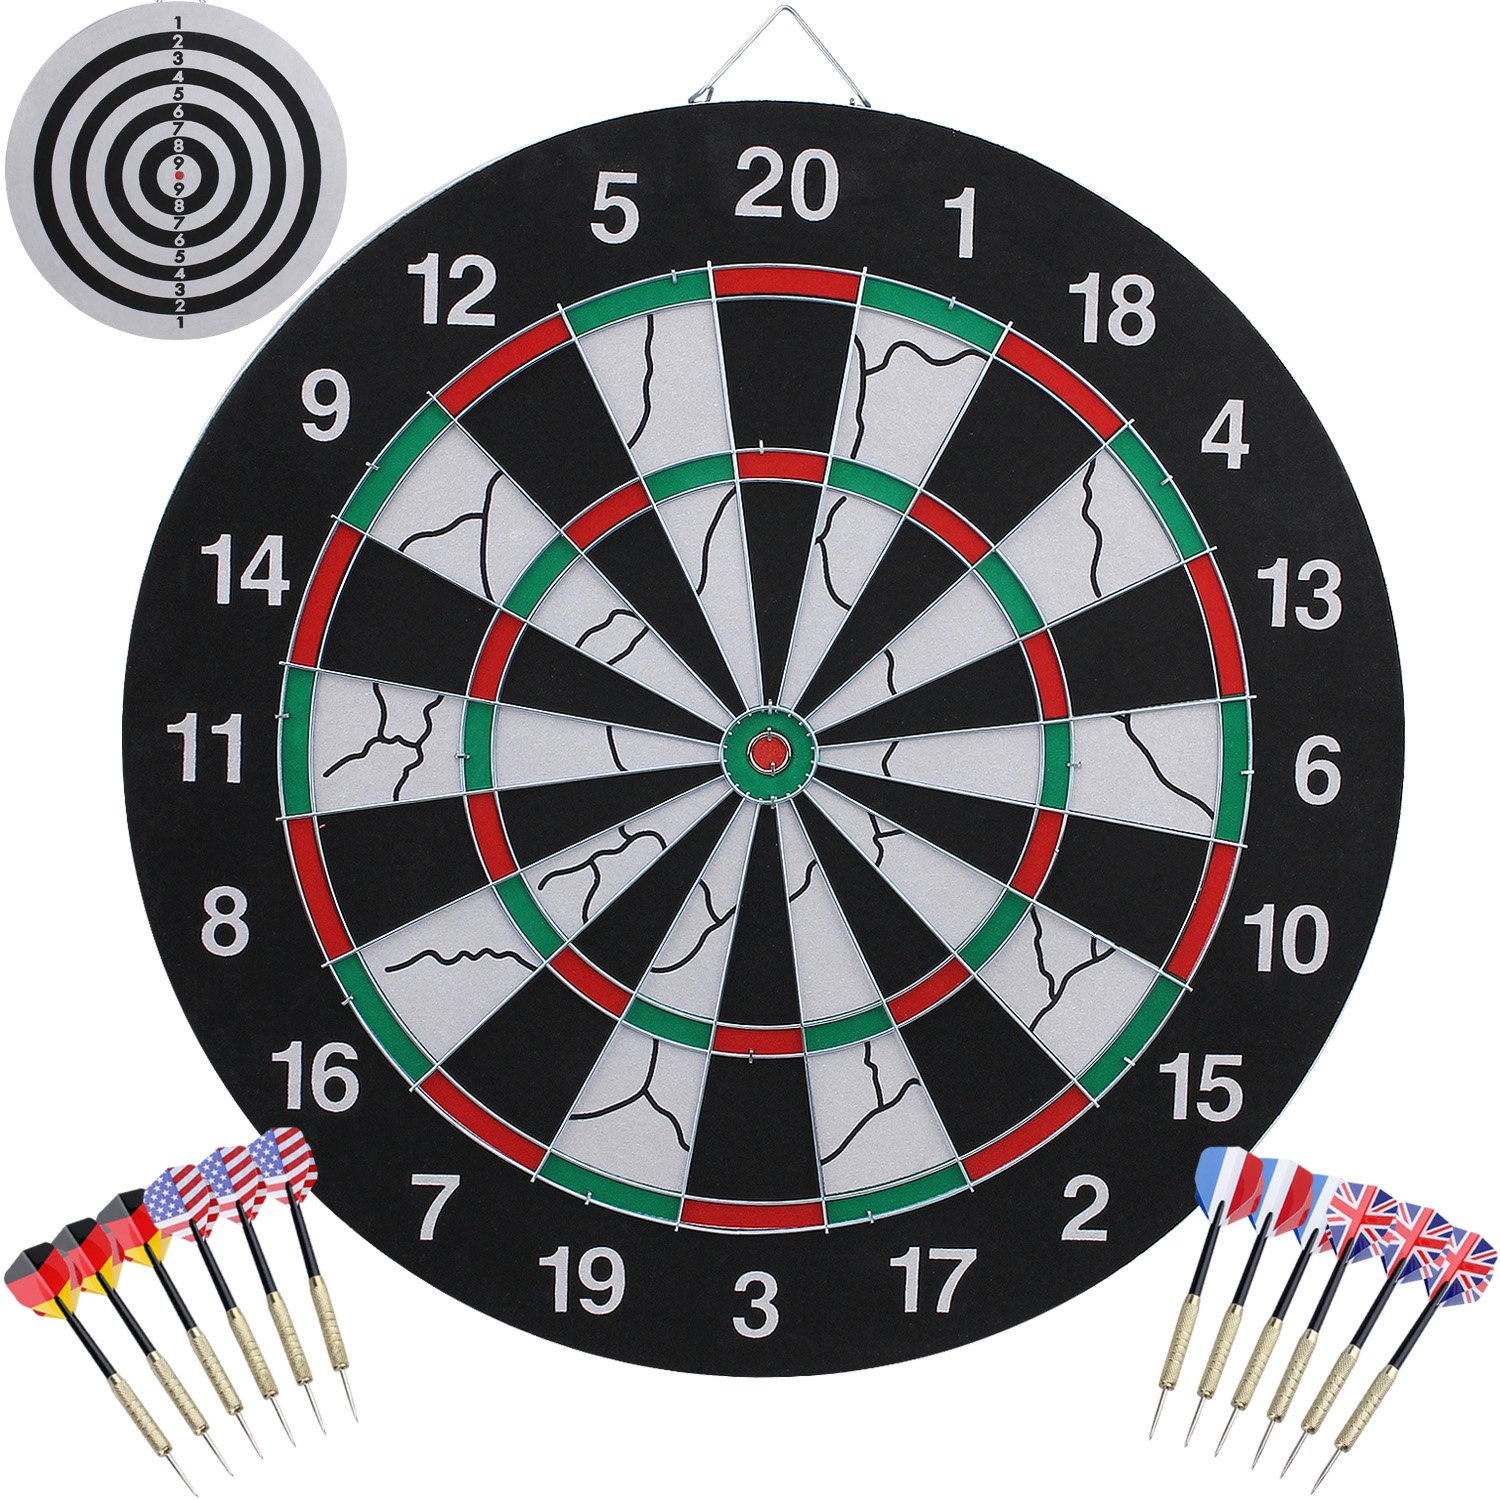 AUGYMER Dart Board, Double Sided Dart Boards with 12 Brass Darts 18 Inch Professional Game Dart Board Steel Tip Dartboard by AUGYMER